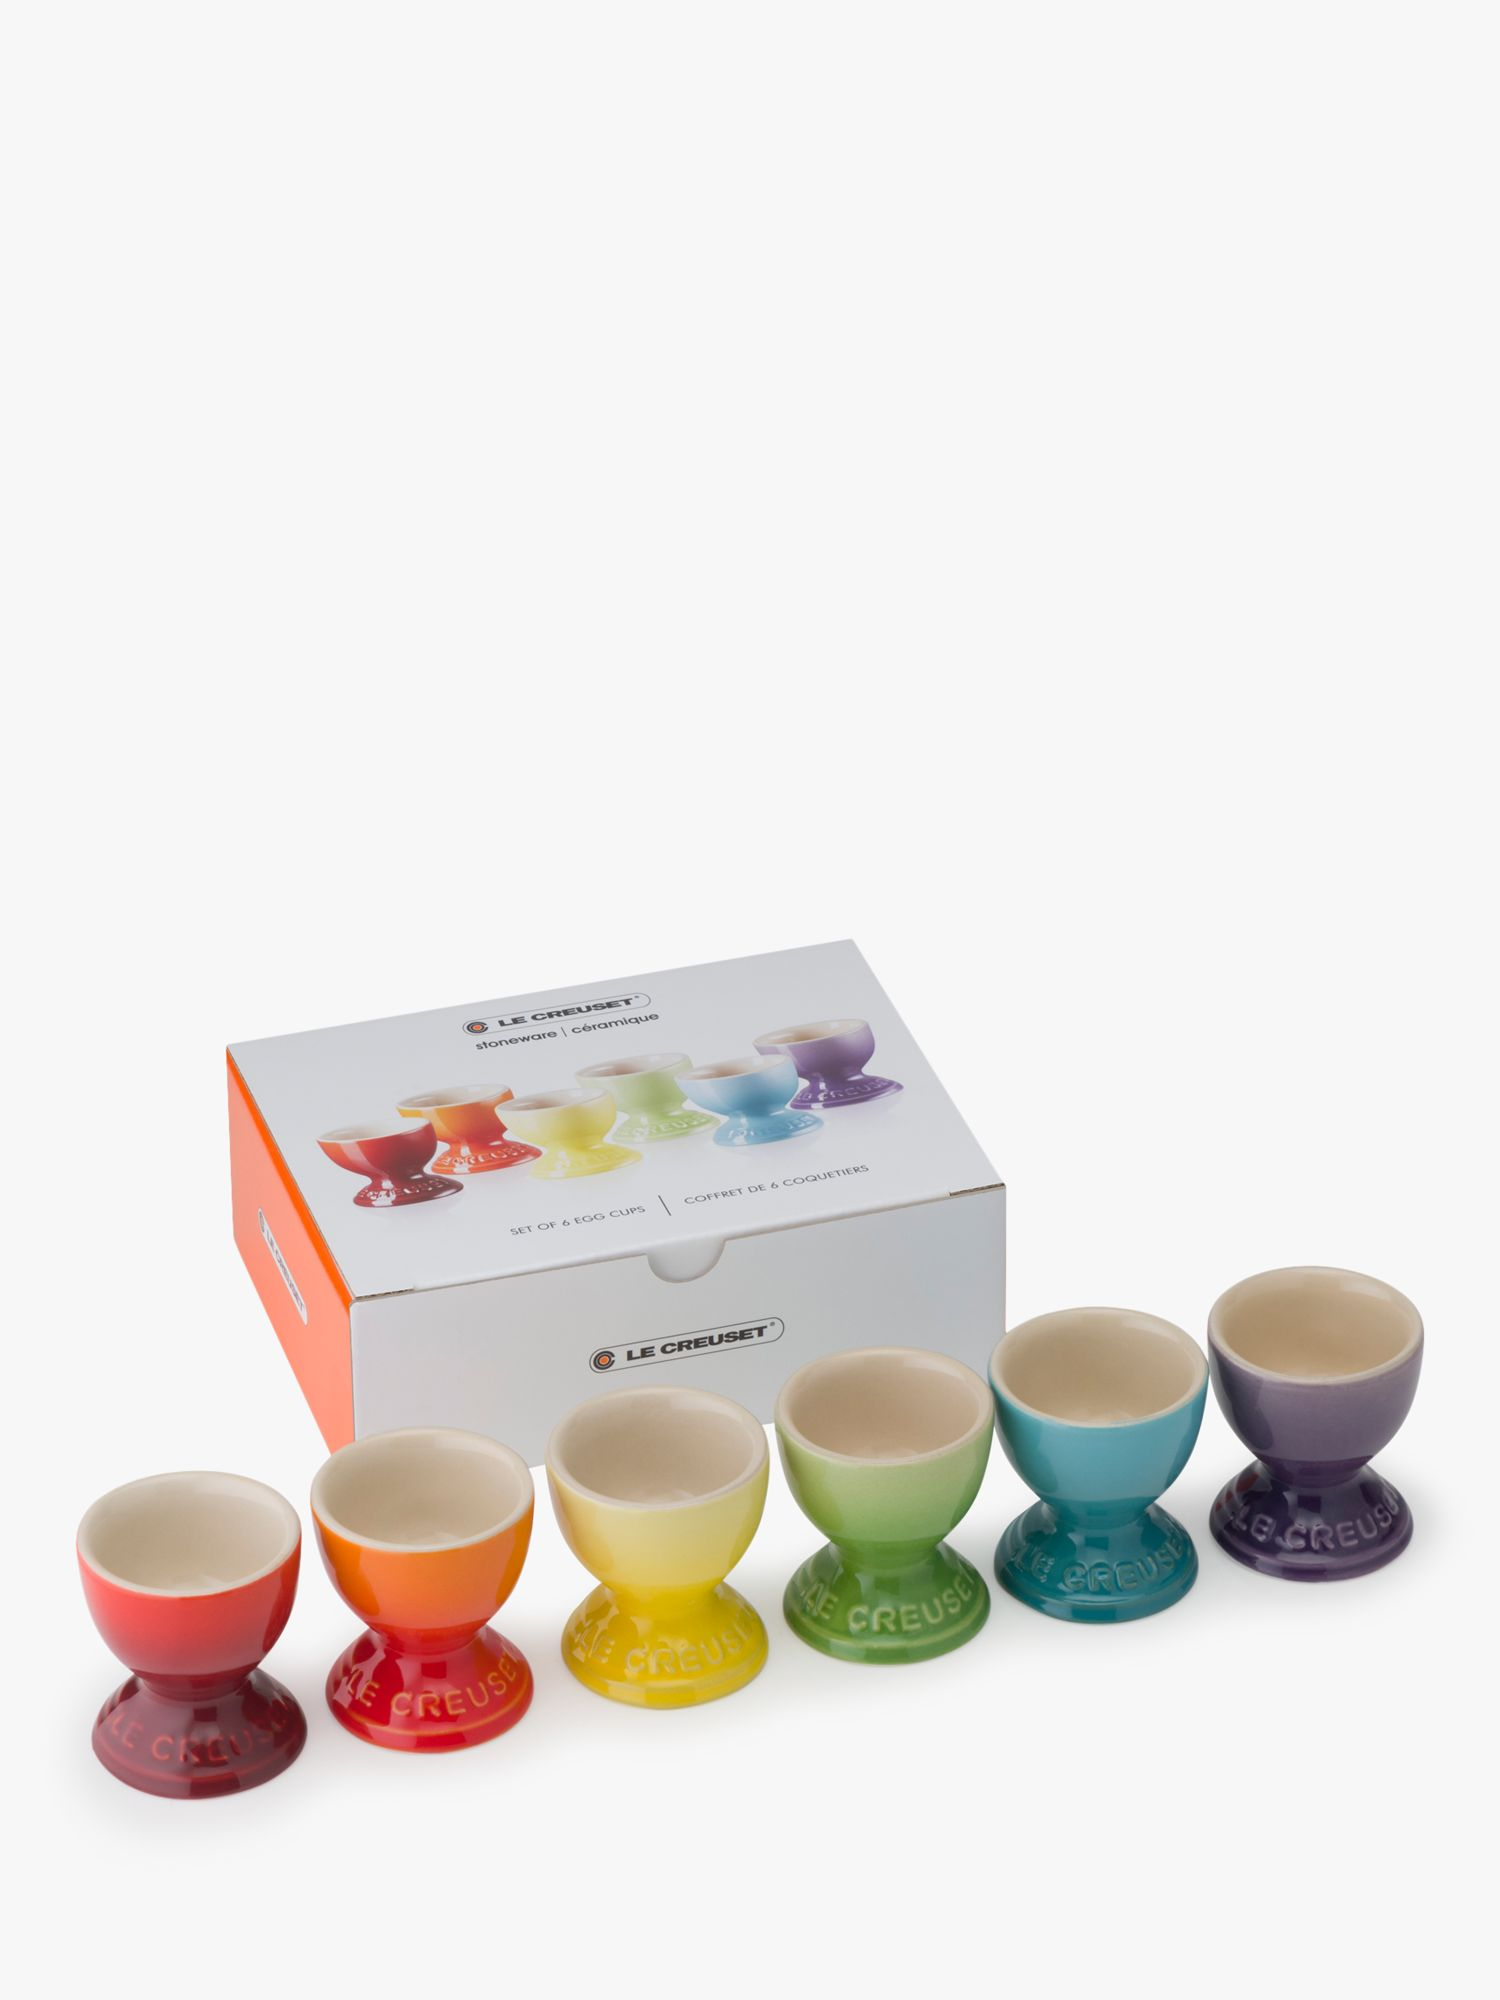 Le Creuset Le Creuset Stoneware Rainbow Egg Cups, Set of 6, Assorted